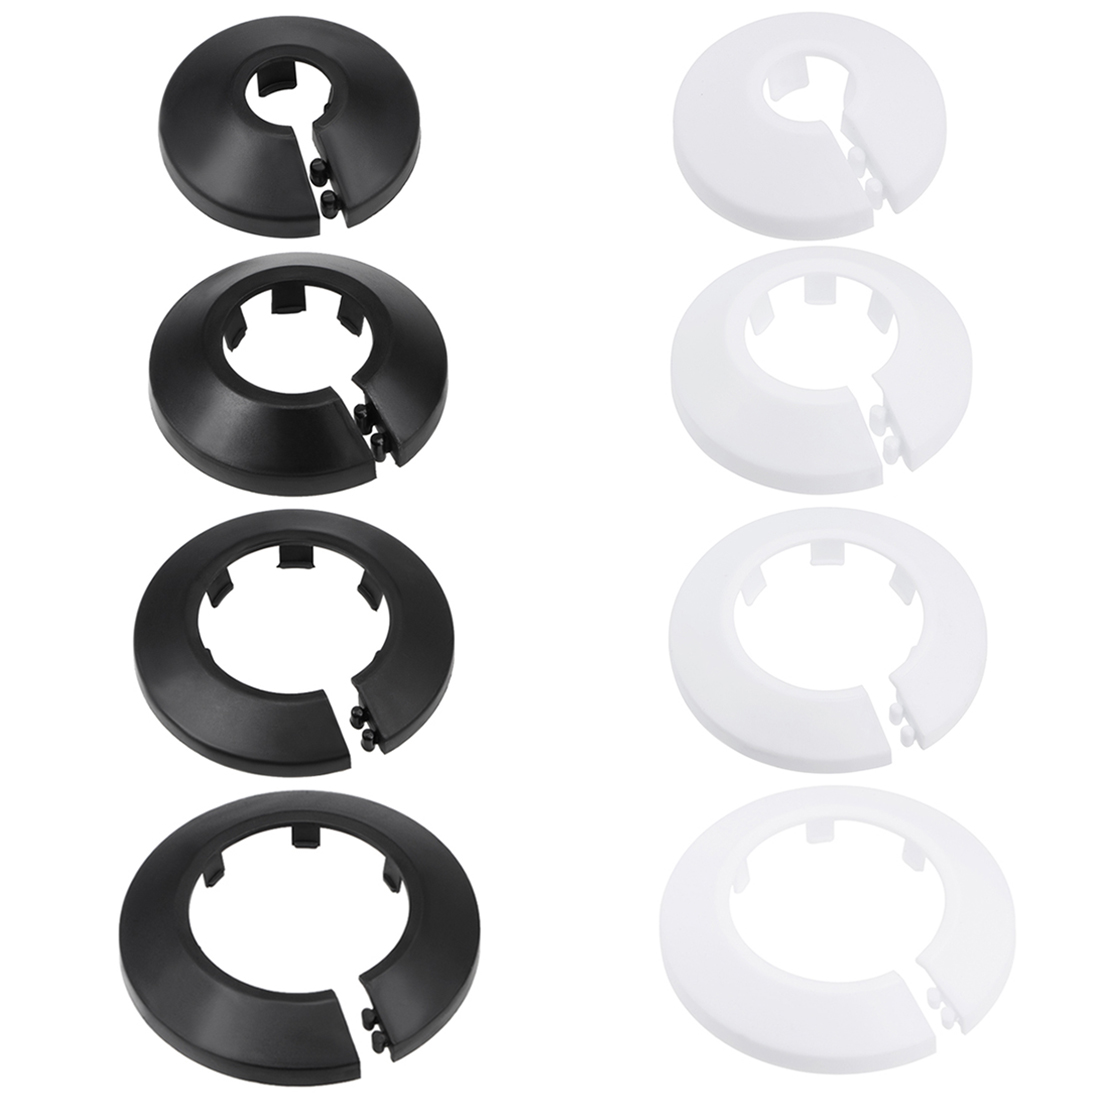 Uxcell 4Pcs Pipe Collar 13/17/21/25/33/35/41.5/44/50/64/75/90mm PP Radiator Escutcheon Pipe Cover Decoration White/Black